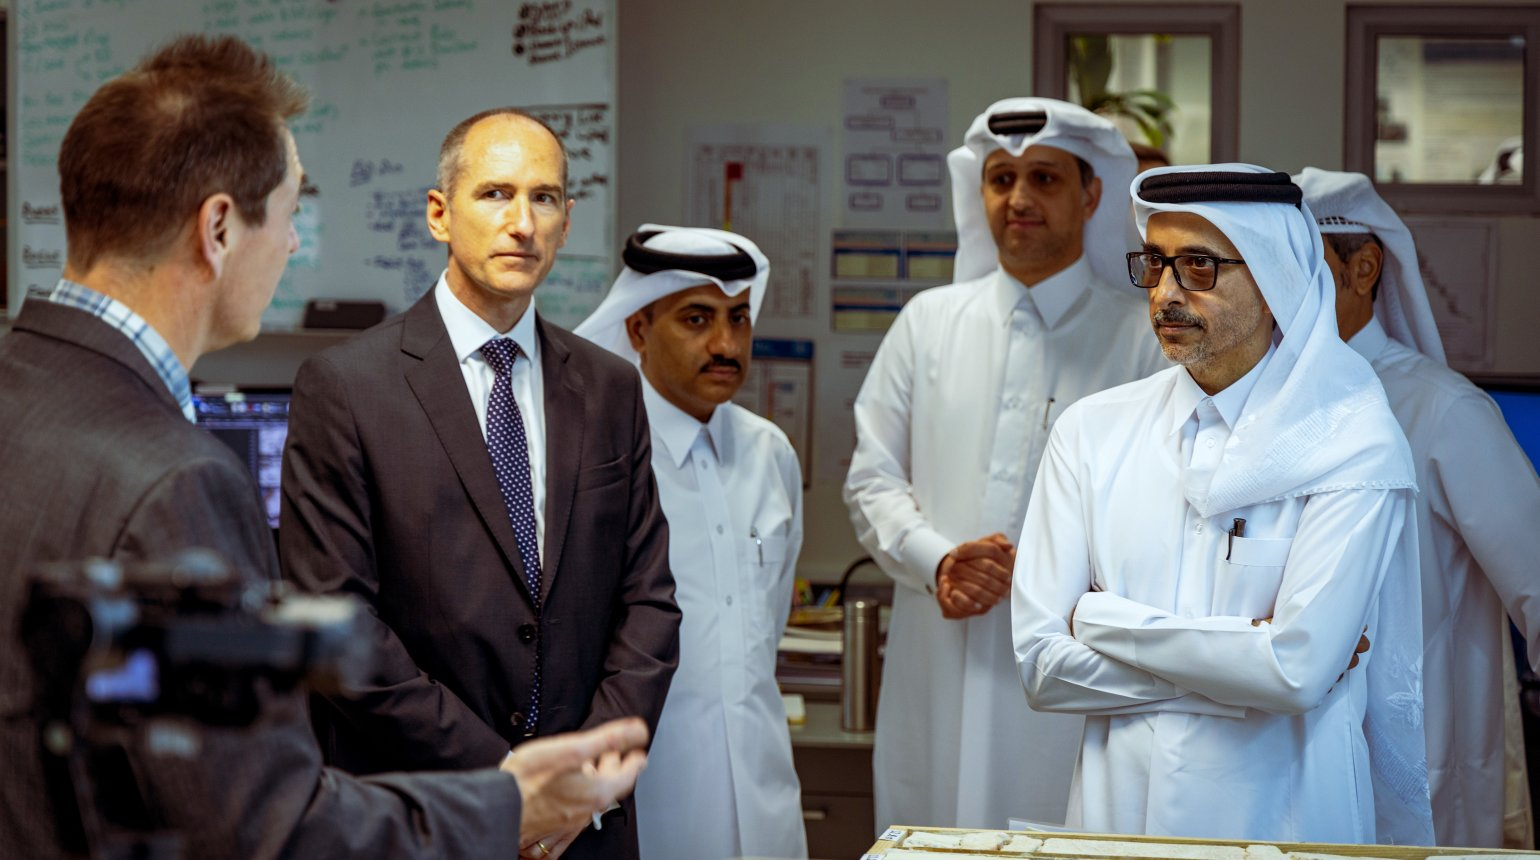 <p>His Excellency Salah bin Ghanem Al Ali visited the HBKU Research Complex and Qatar's hub of technology innovation, Qatar Science & Technology Park.</p>